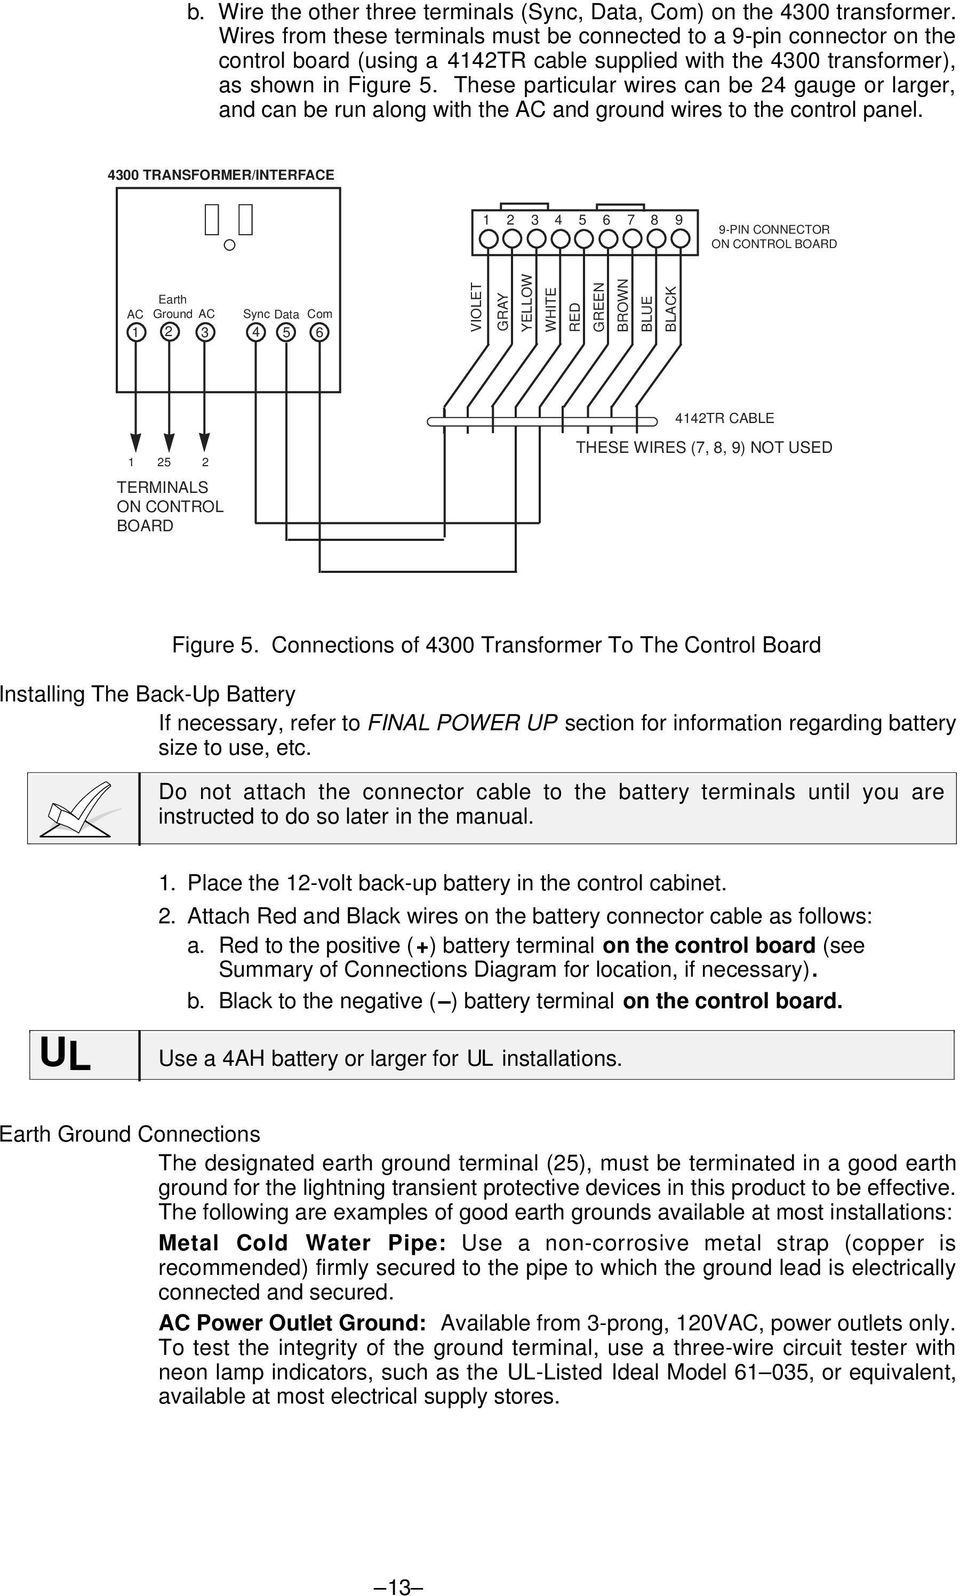 Vista 20se Installation Instructions 2 Partitioned Security System Pdf Battery Terminal Wiring Diagram These Particular Wires Can Be 24 Gauge Or Larger And Run Along With